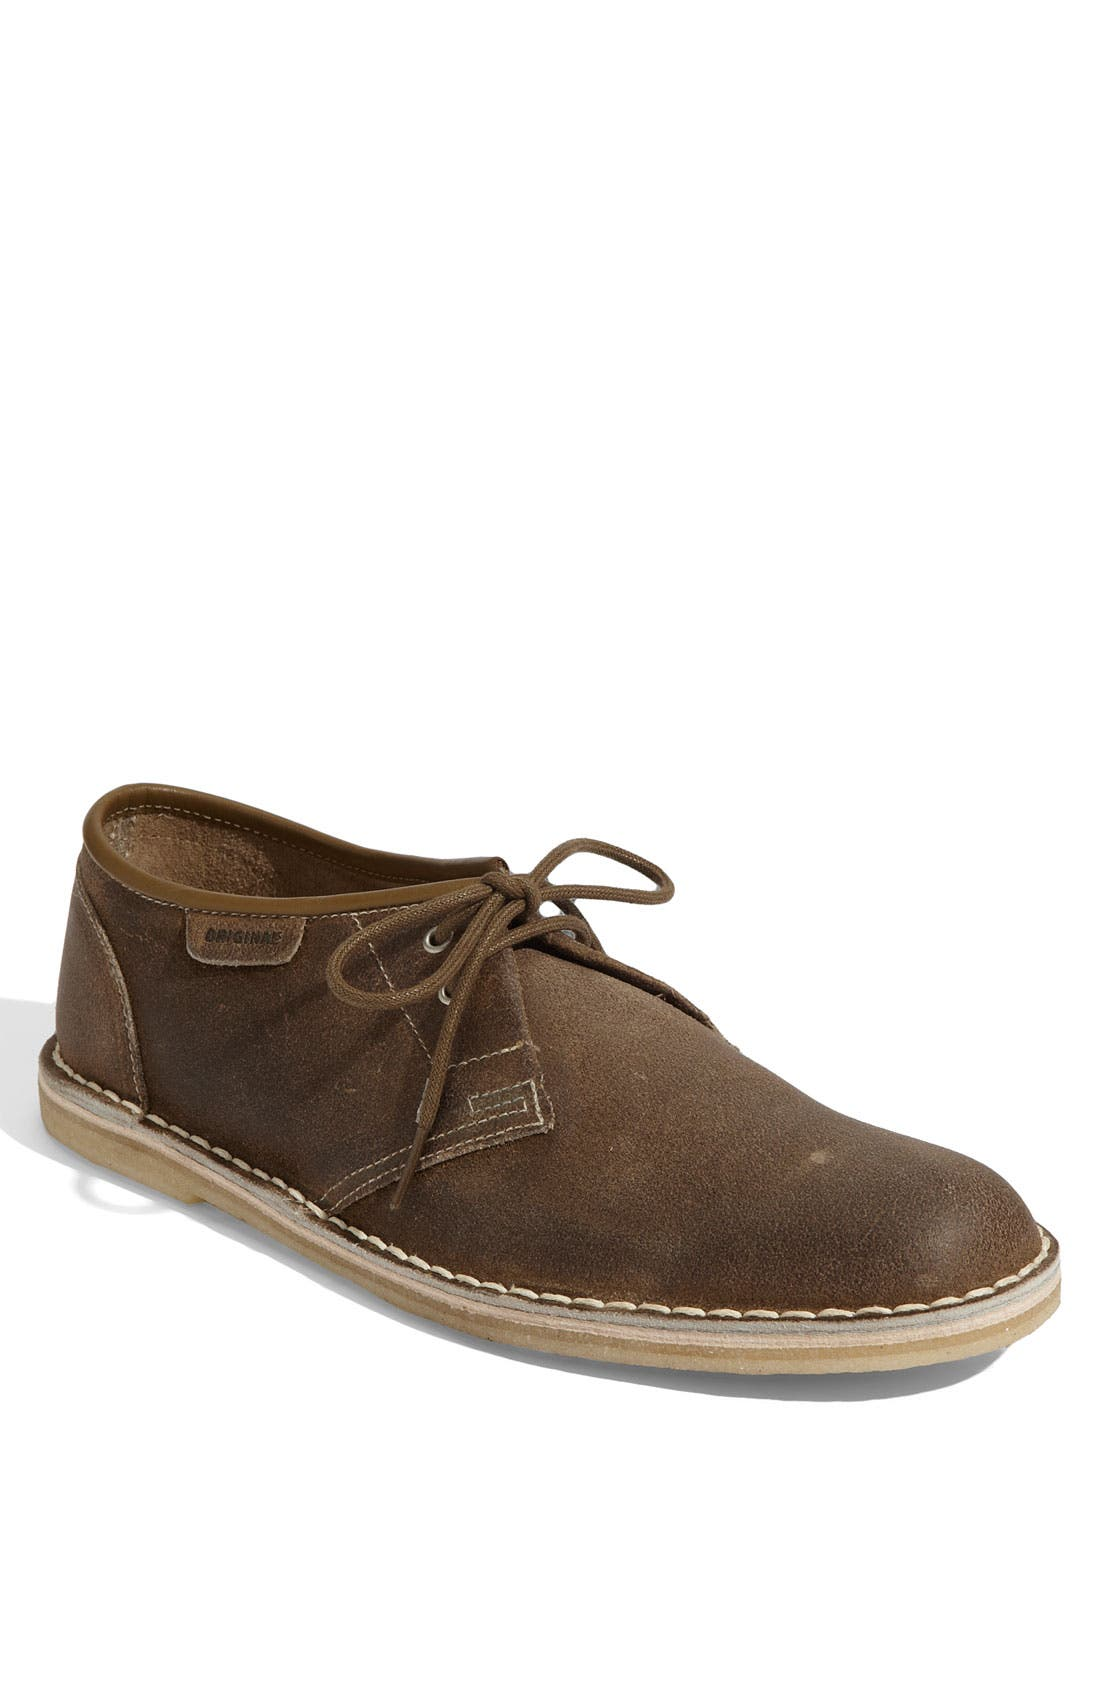 Main Image - Clarks® Originals 'Jink' Oxford   (Men)